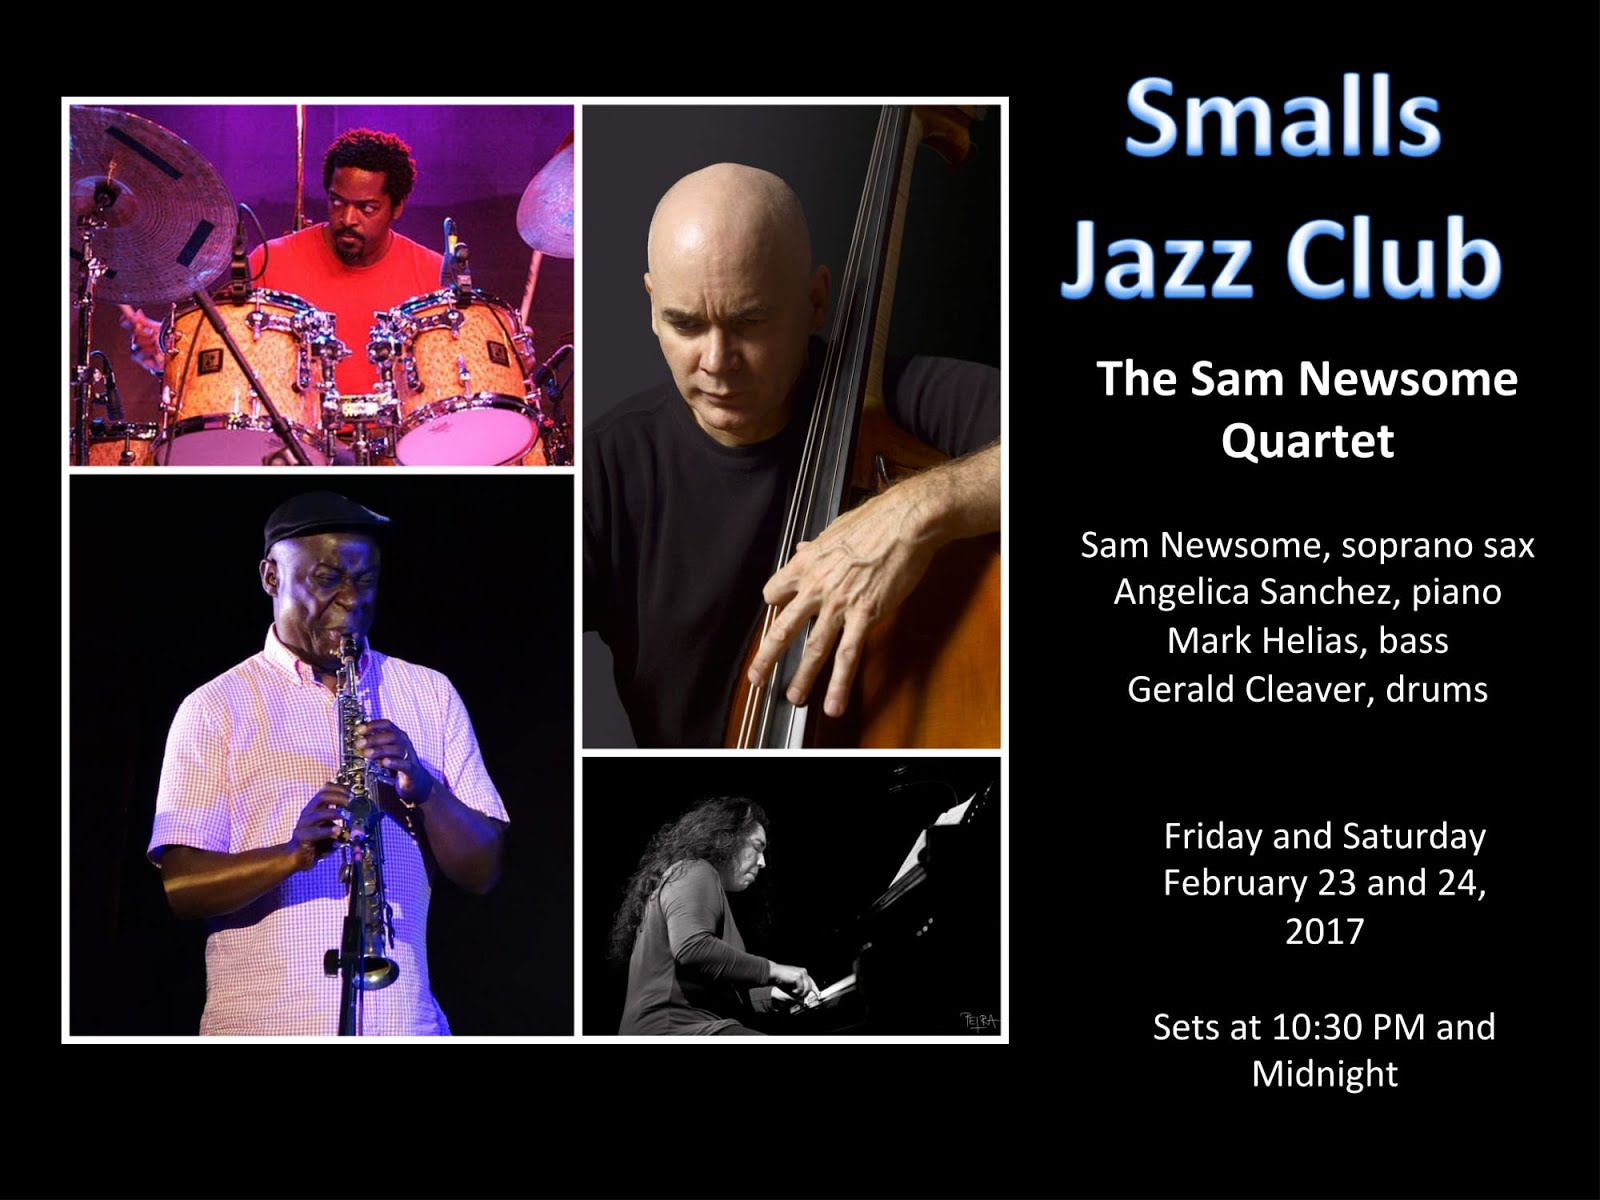 February 24 and 25, 2017 at Smalls Jazz Club